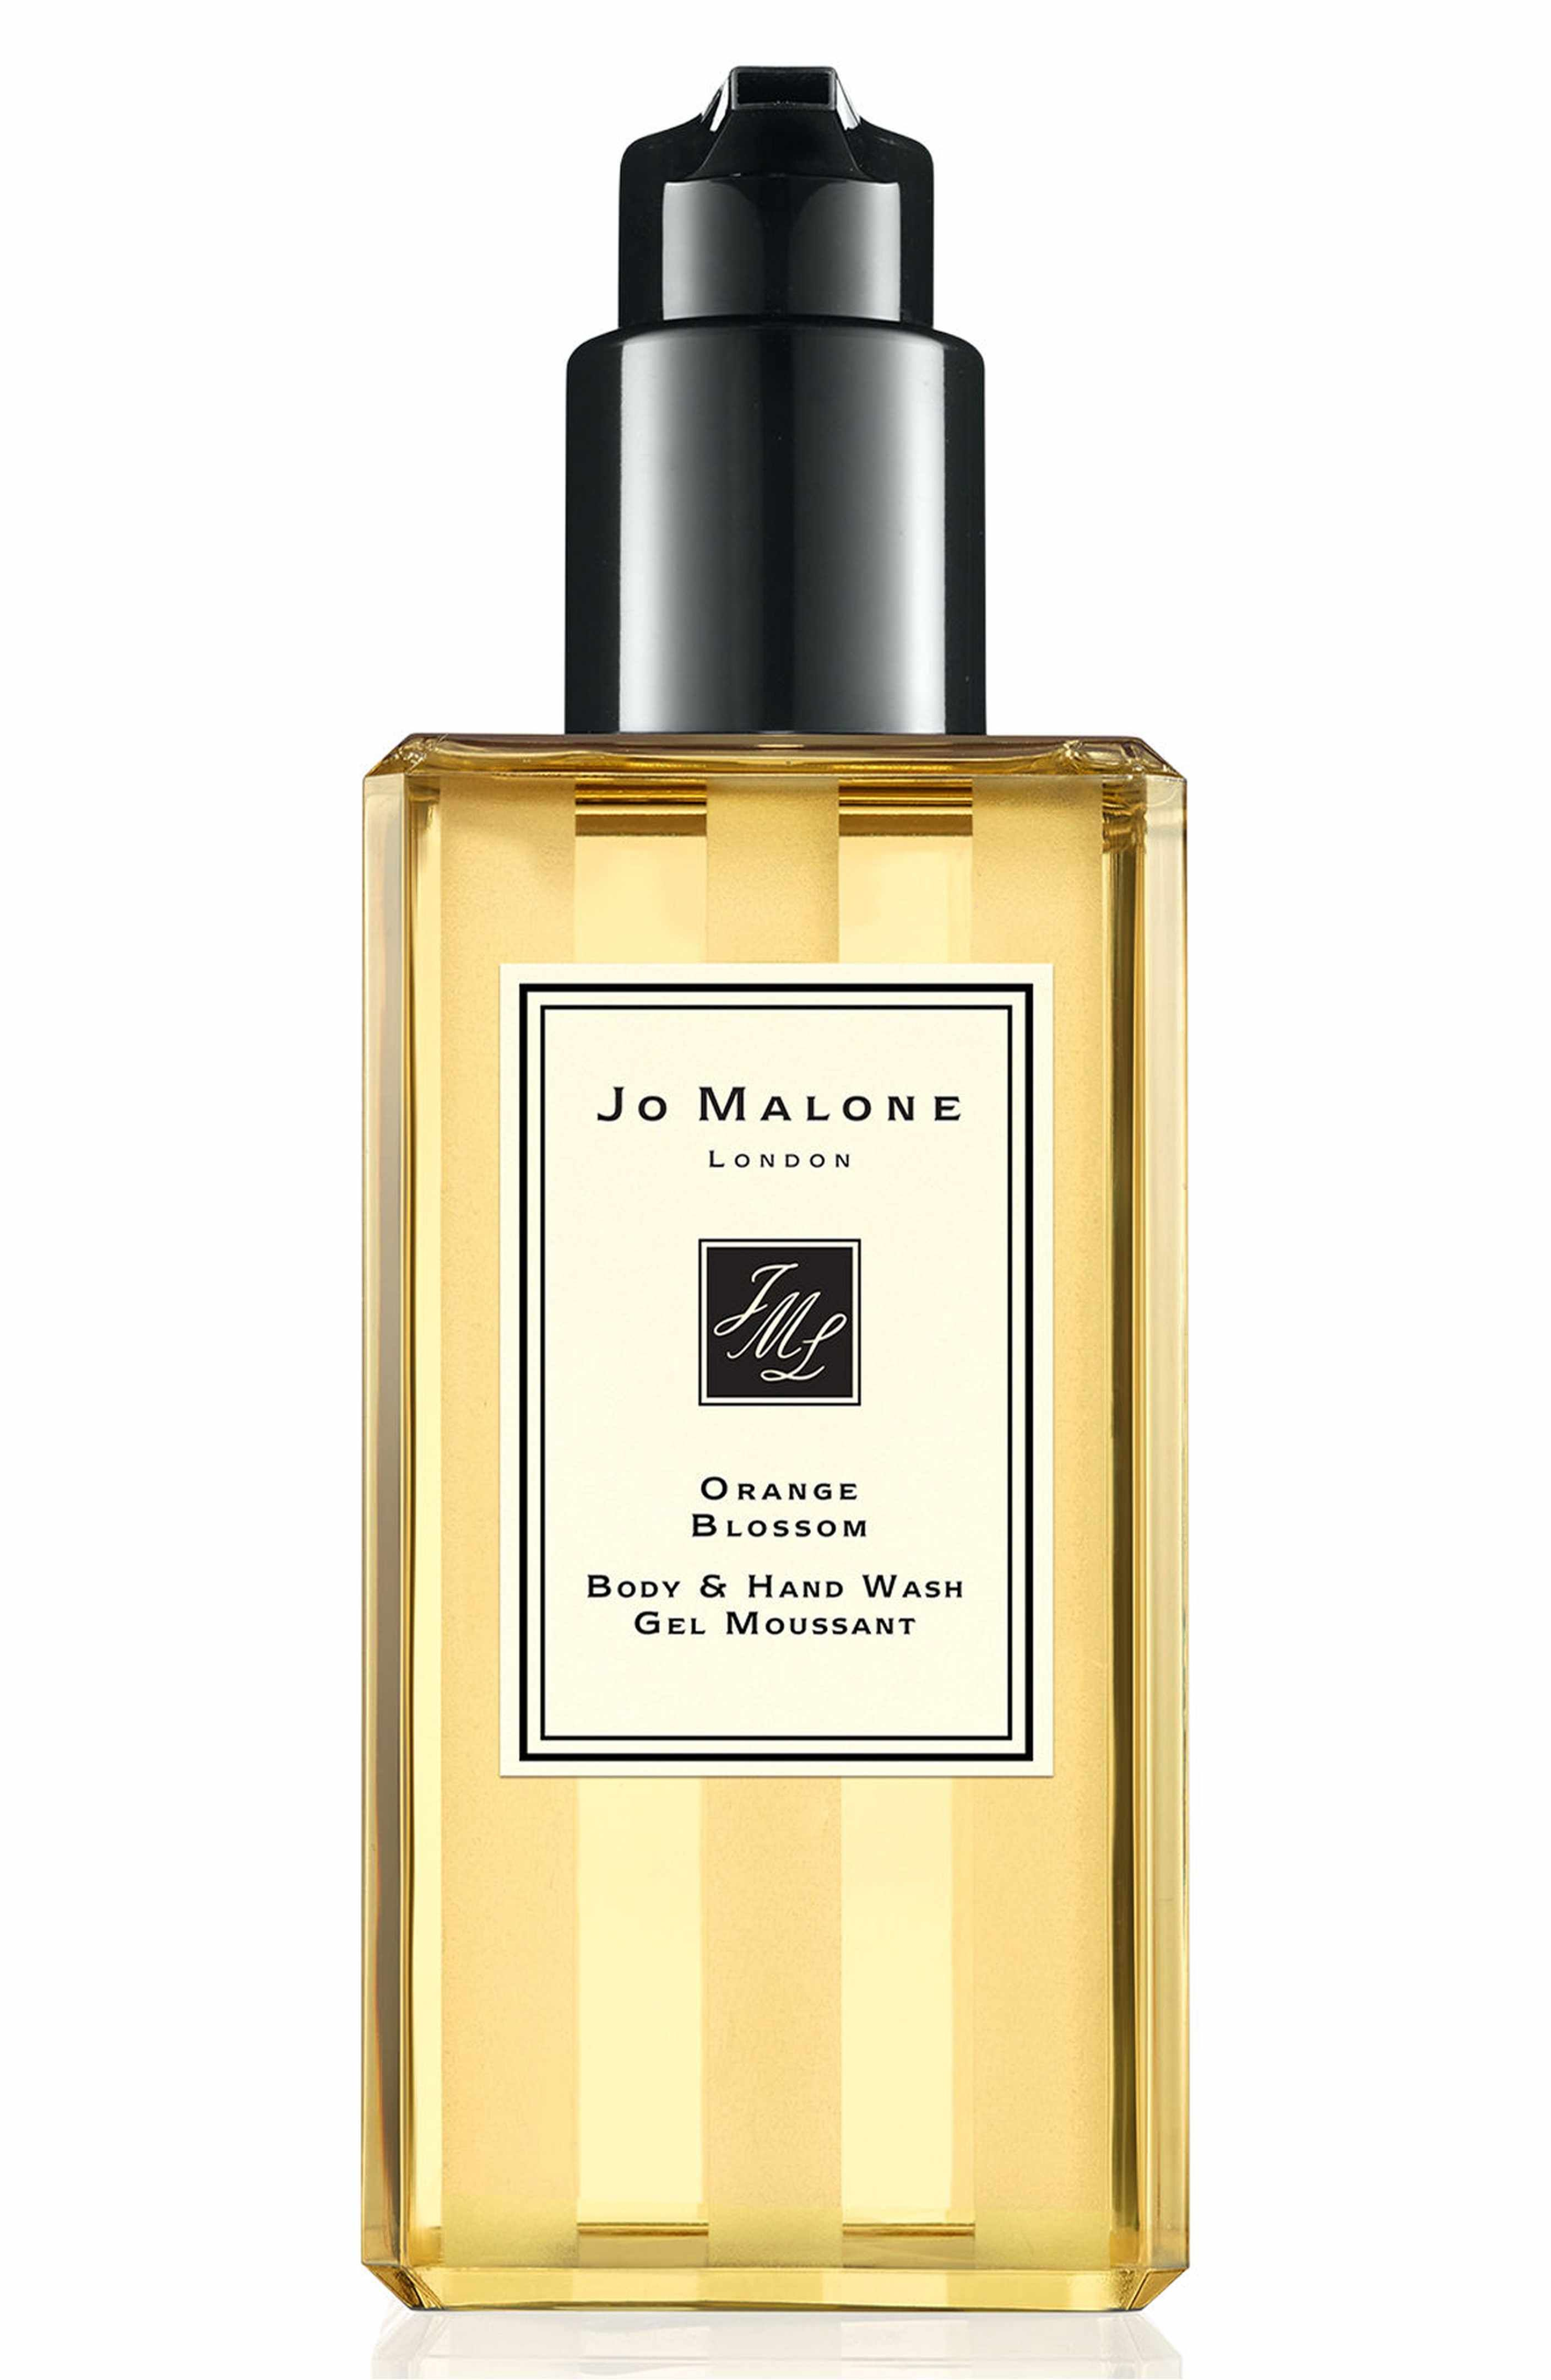 Main Image Jo Malone London Orange Blossom Body Hand Wash All St Ives Sea Salt Ampamp Pacific Kelp Exfoliating 400ml